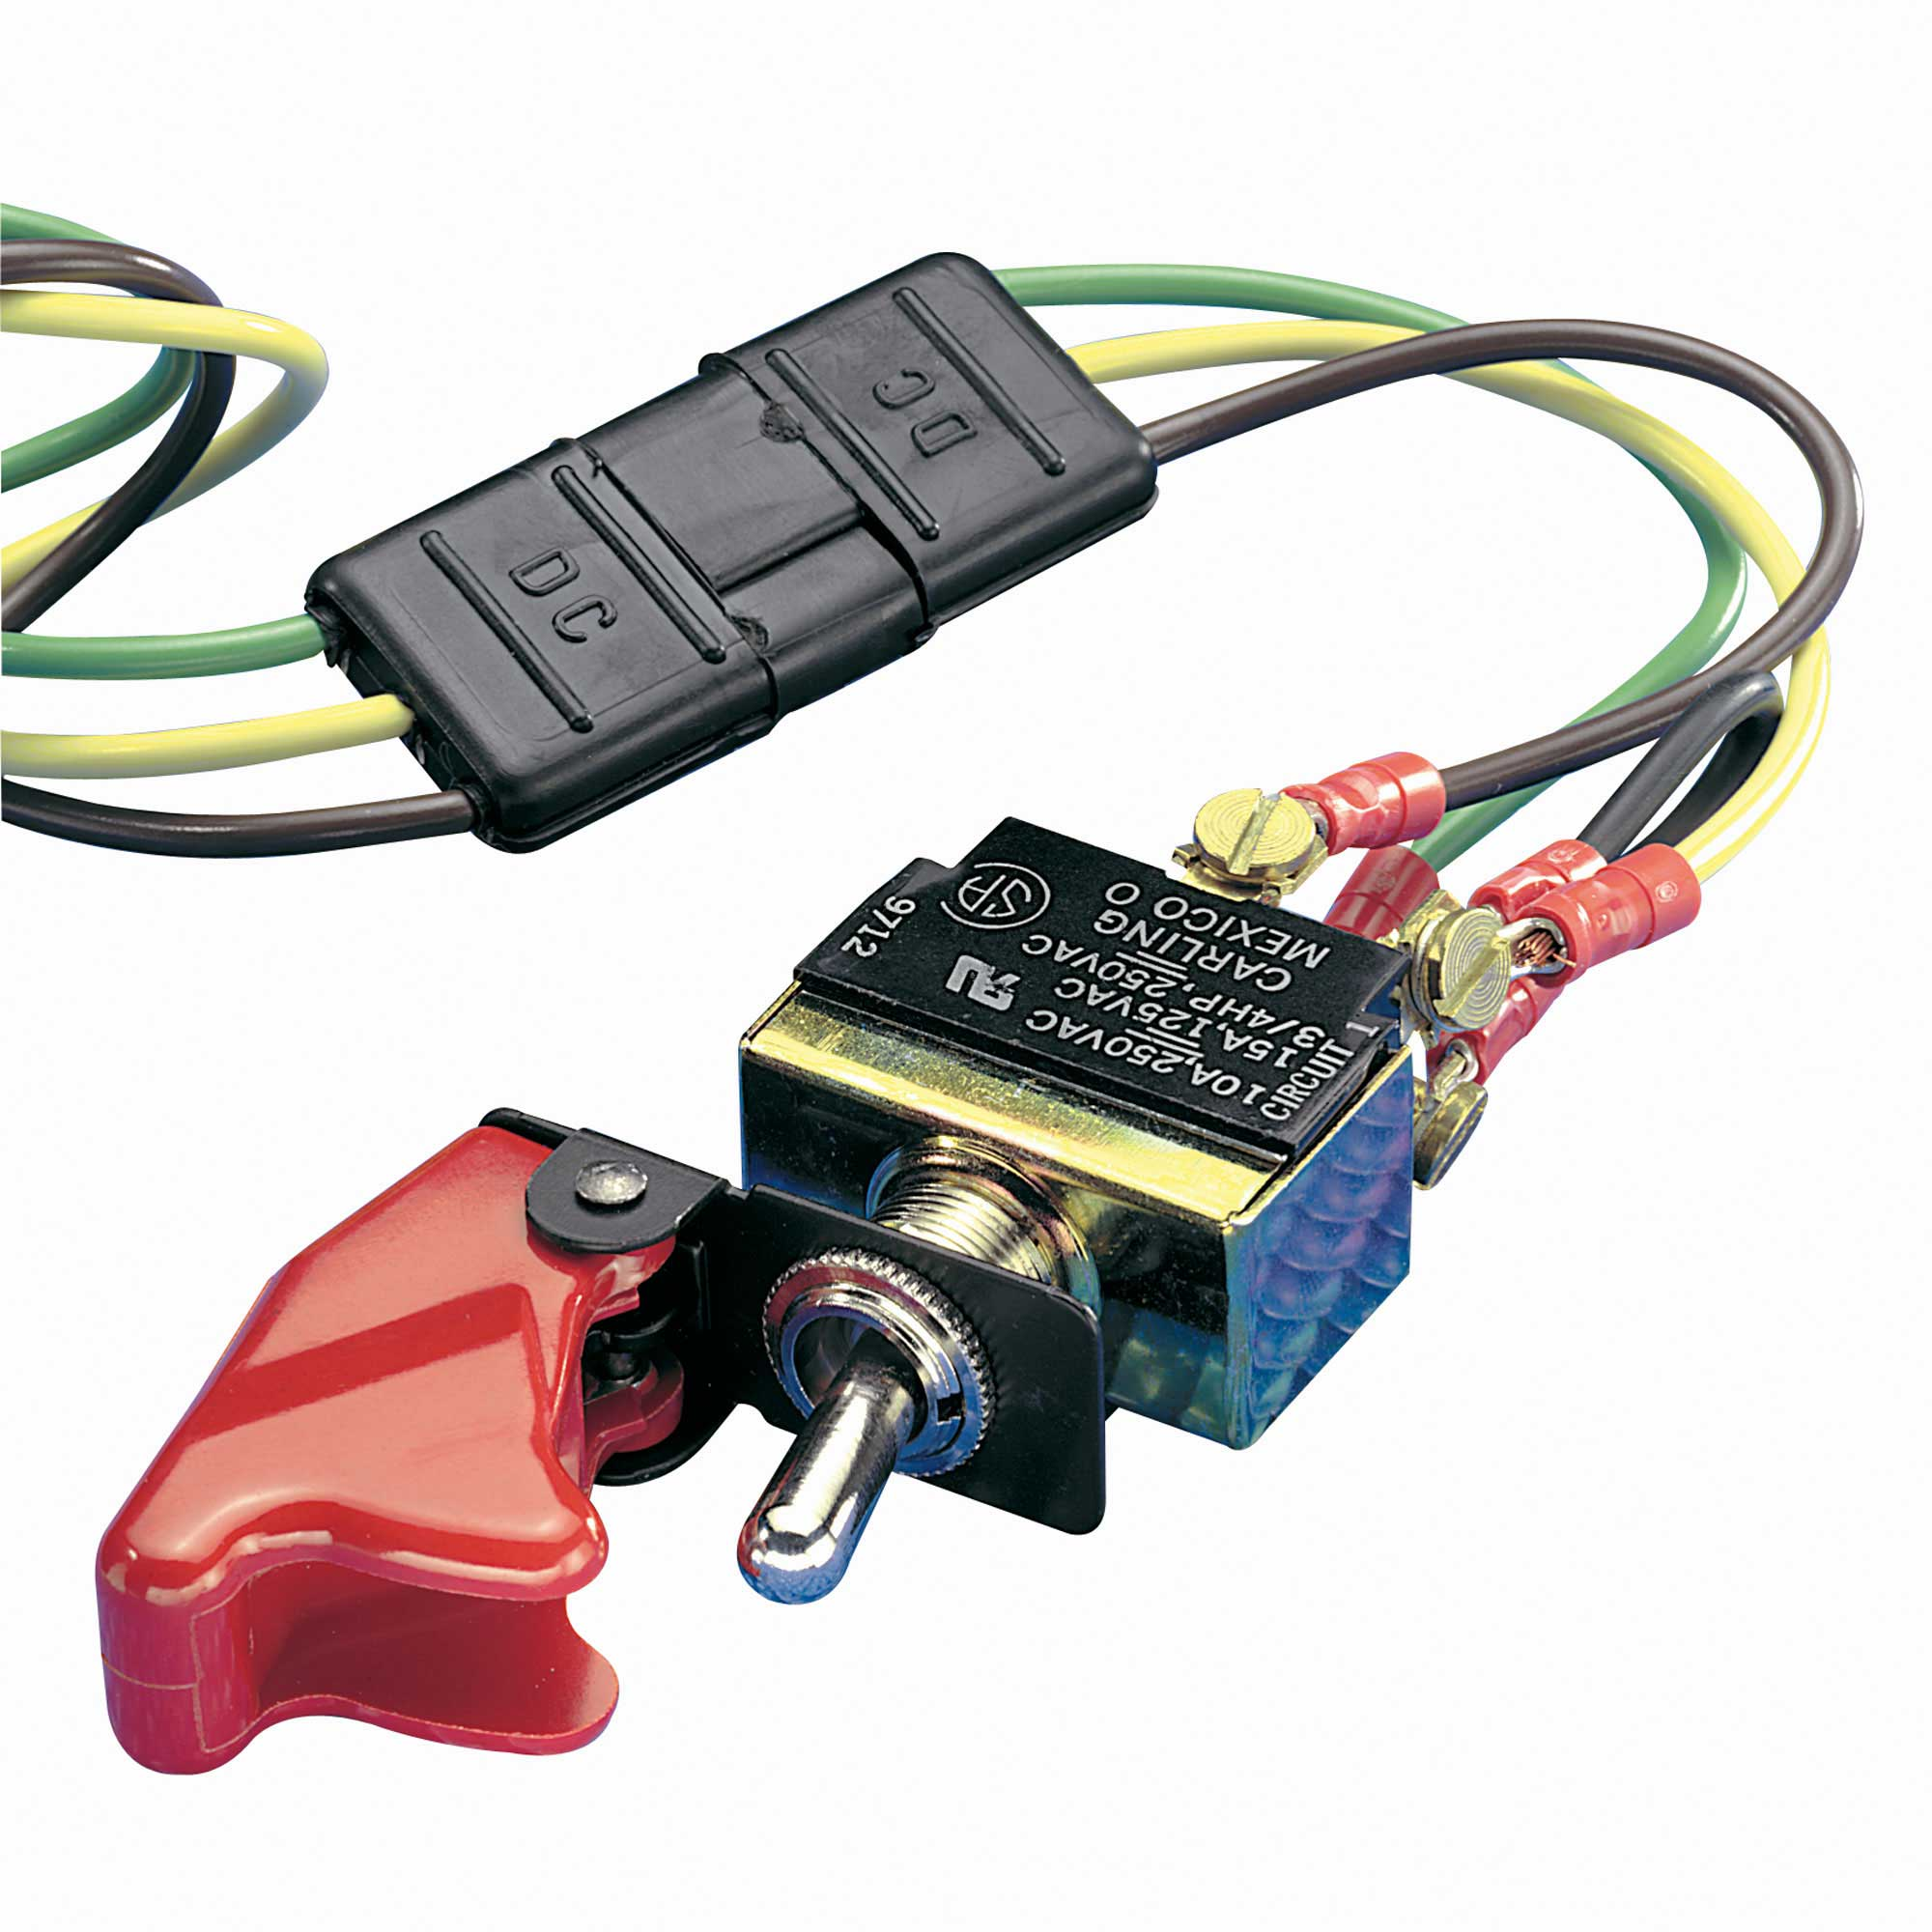 hight resolution of details about longacre combined ignition starter switch race rally motorsport